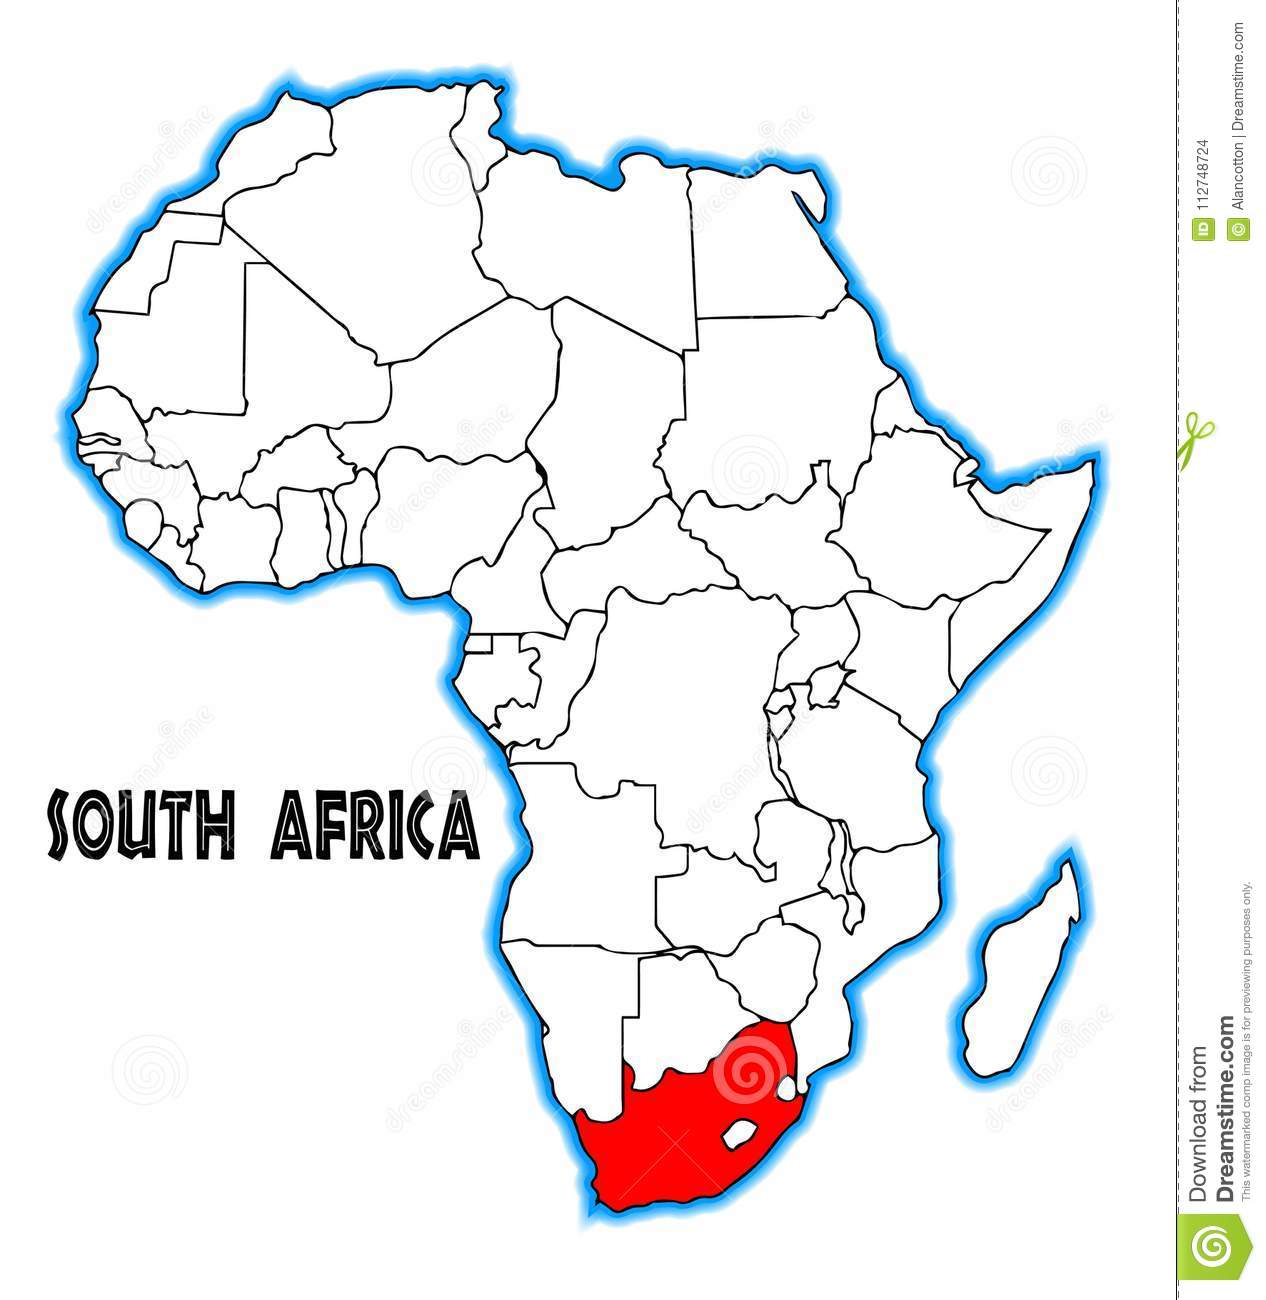 South Africa Map stock vector. Illustration of african   112748724